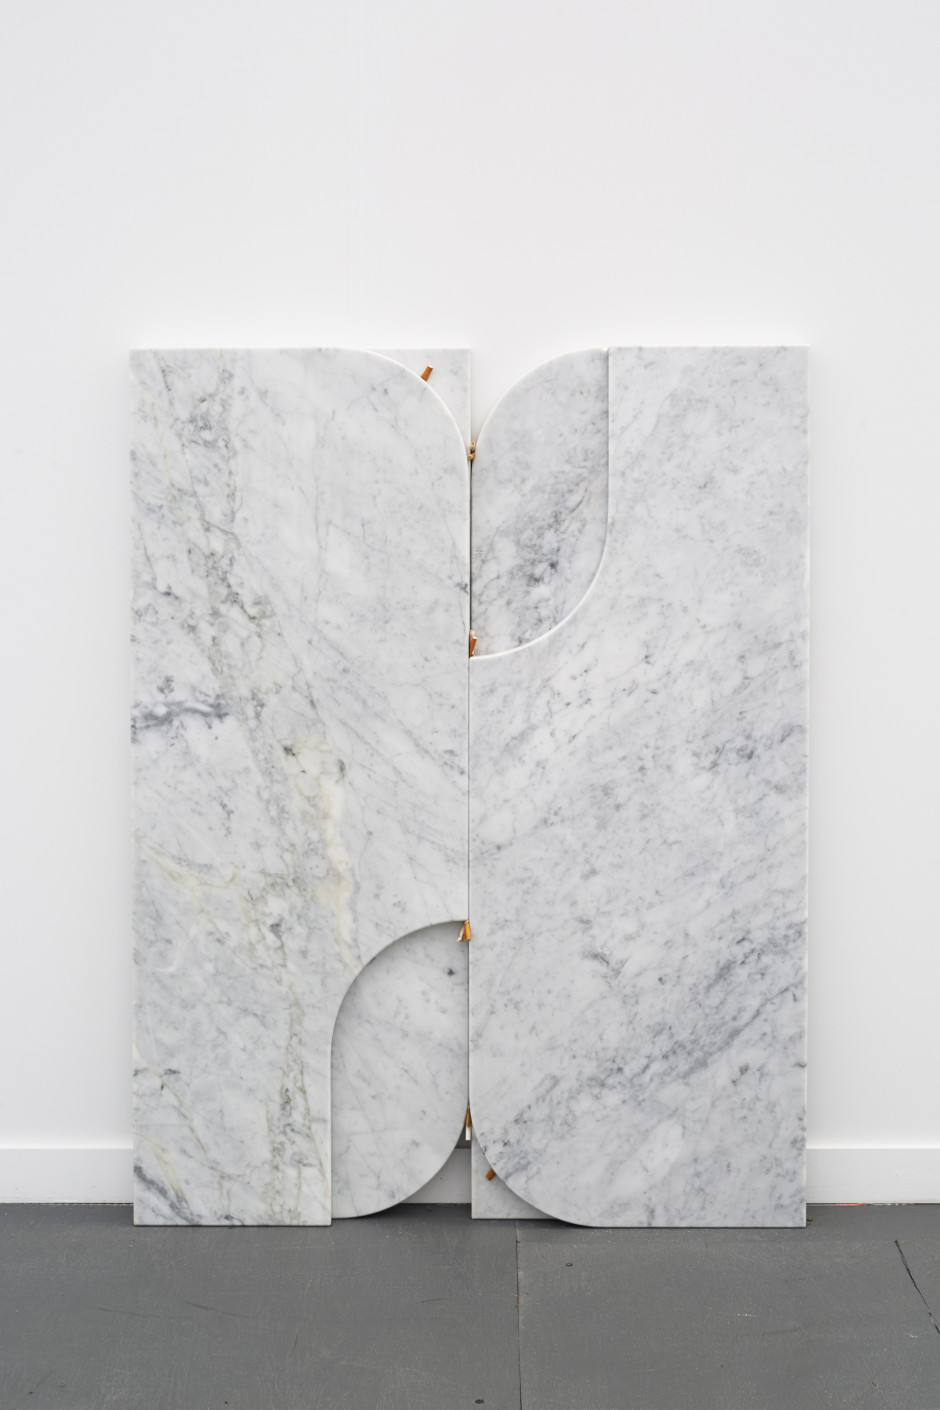 1 2 3 3 2 1, 2015  four marble slabs, nine cigarette butts  134.9 x 89.8 x 5.9 cm 53 1/8 x 35 3/8 x 2 5/16 in.